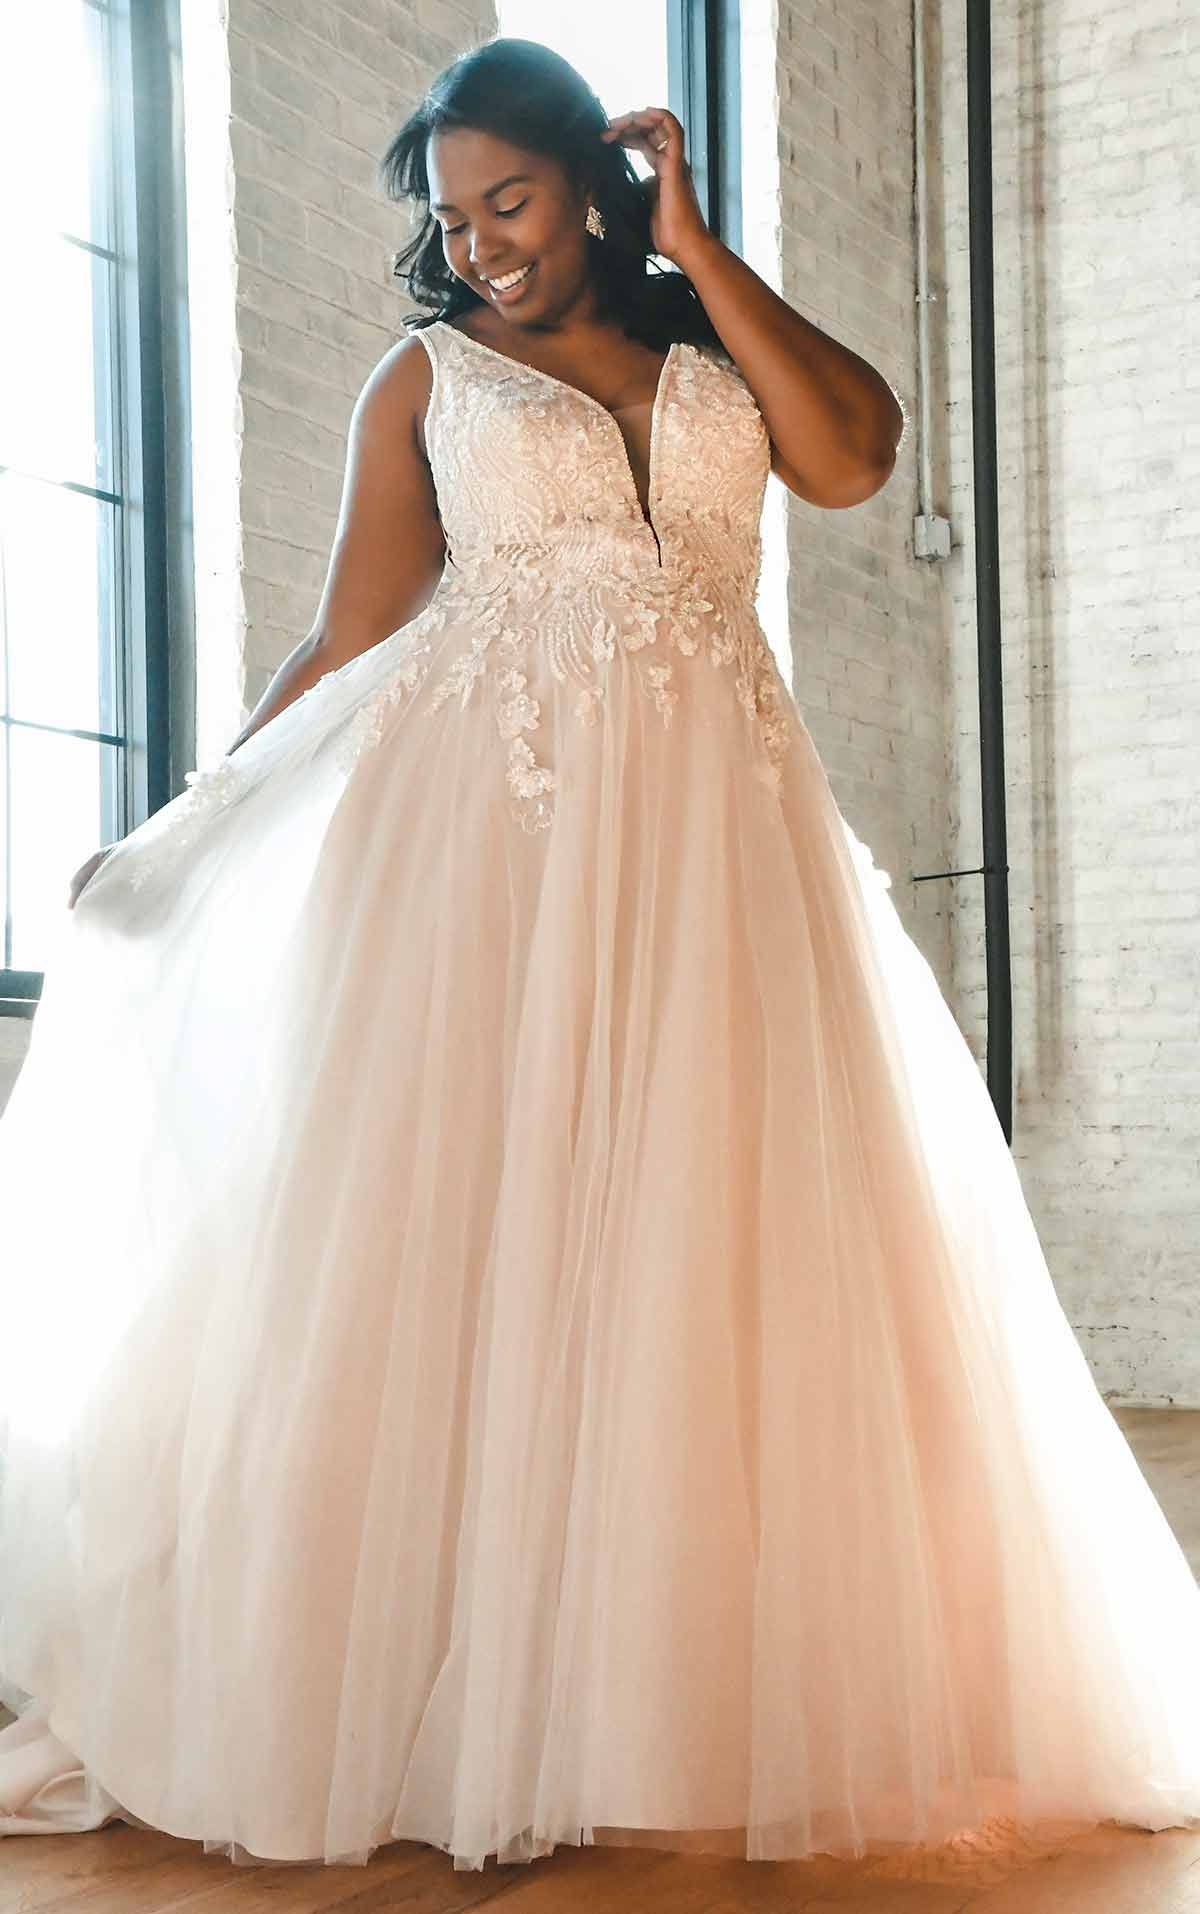 Lace And Tulle A Line Plus Size Wedding Dress With 3d Details Essense Of Australia Wedding Dresses In 2021 Essense Of Australia Wedding Dresses Plus Size Wedding Gowns Wedding Dress Styles [ 1914 x 1200 Pixel ]